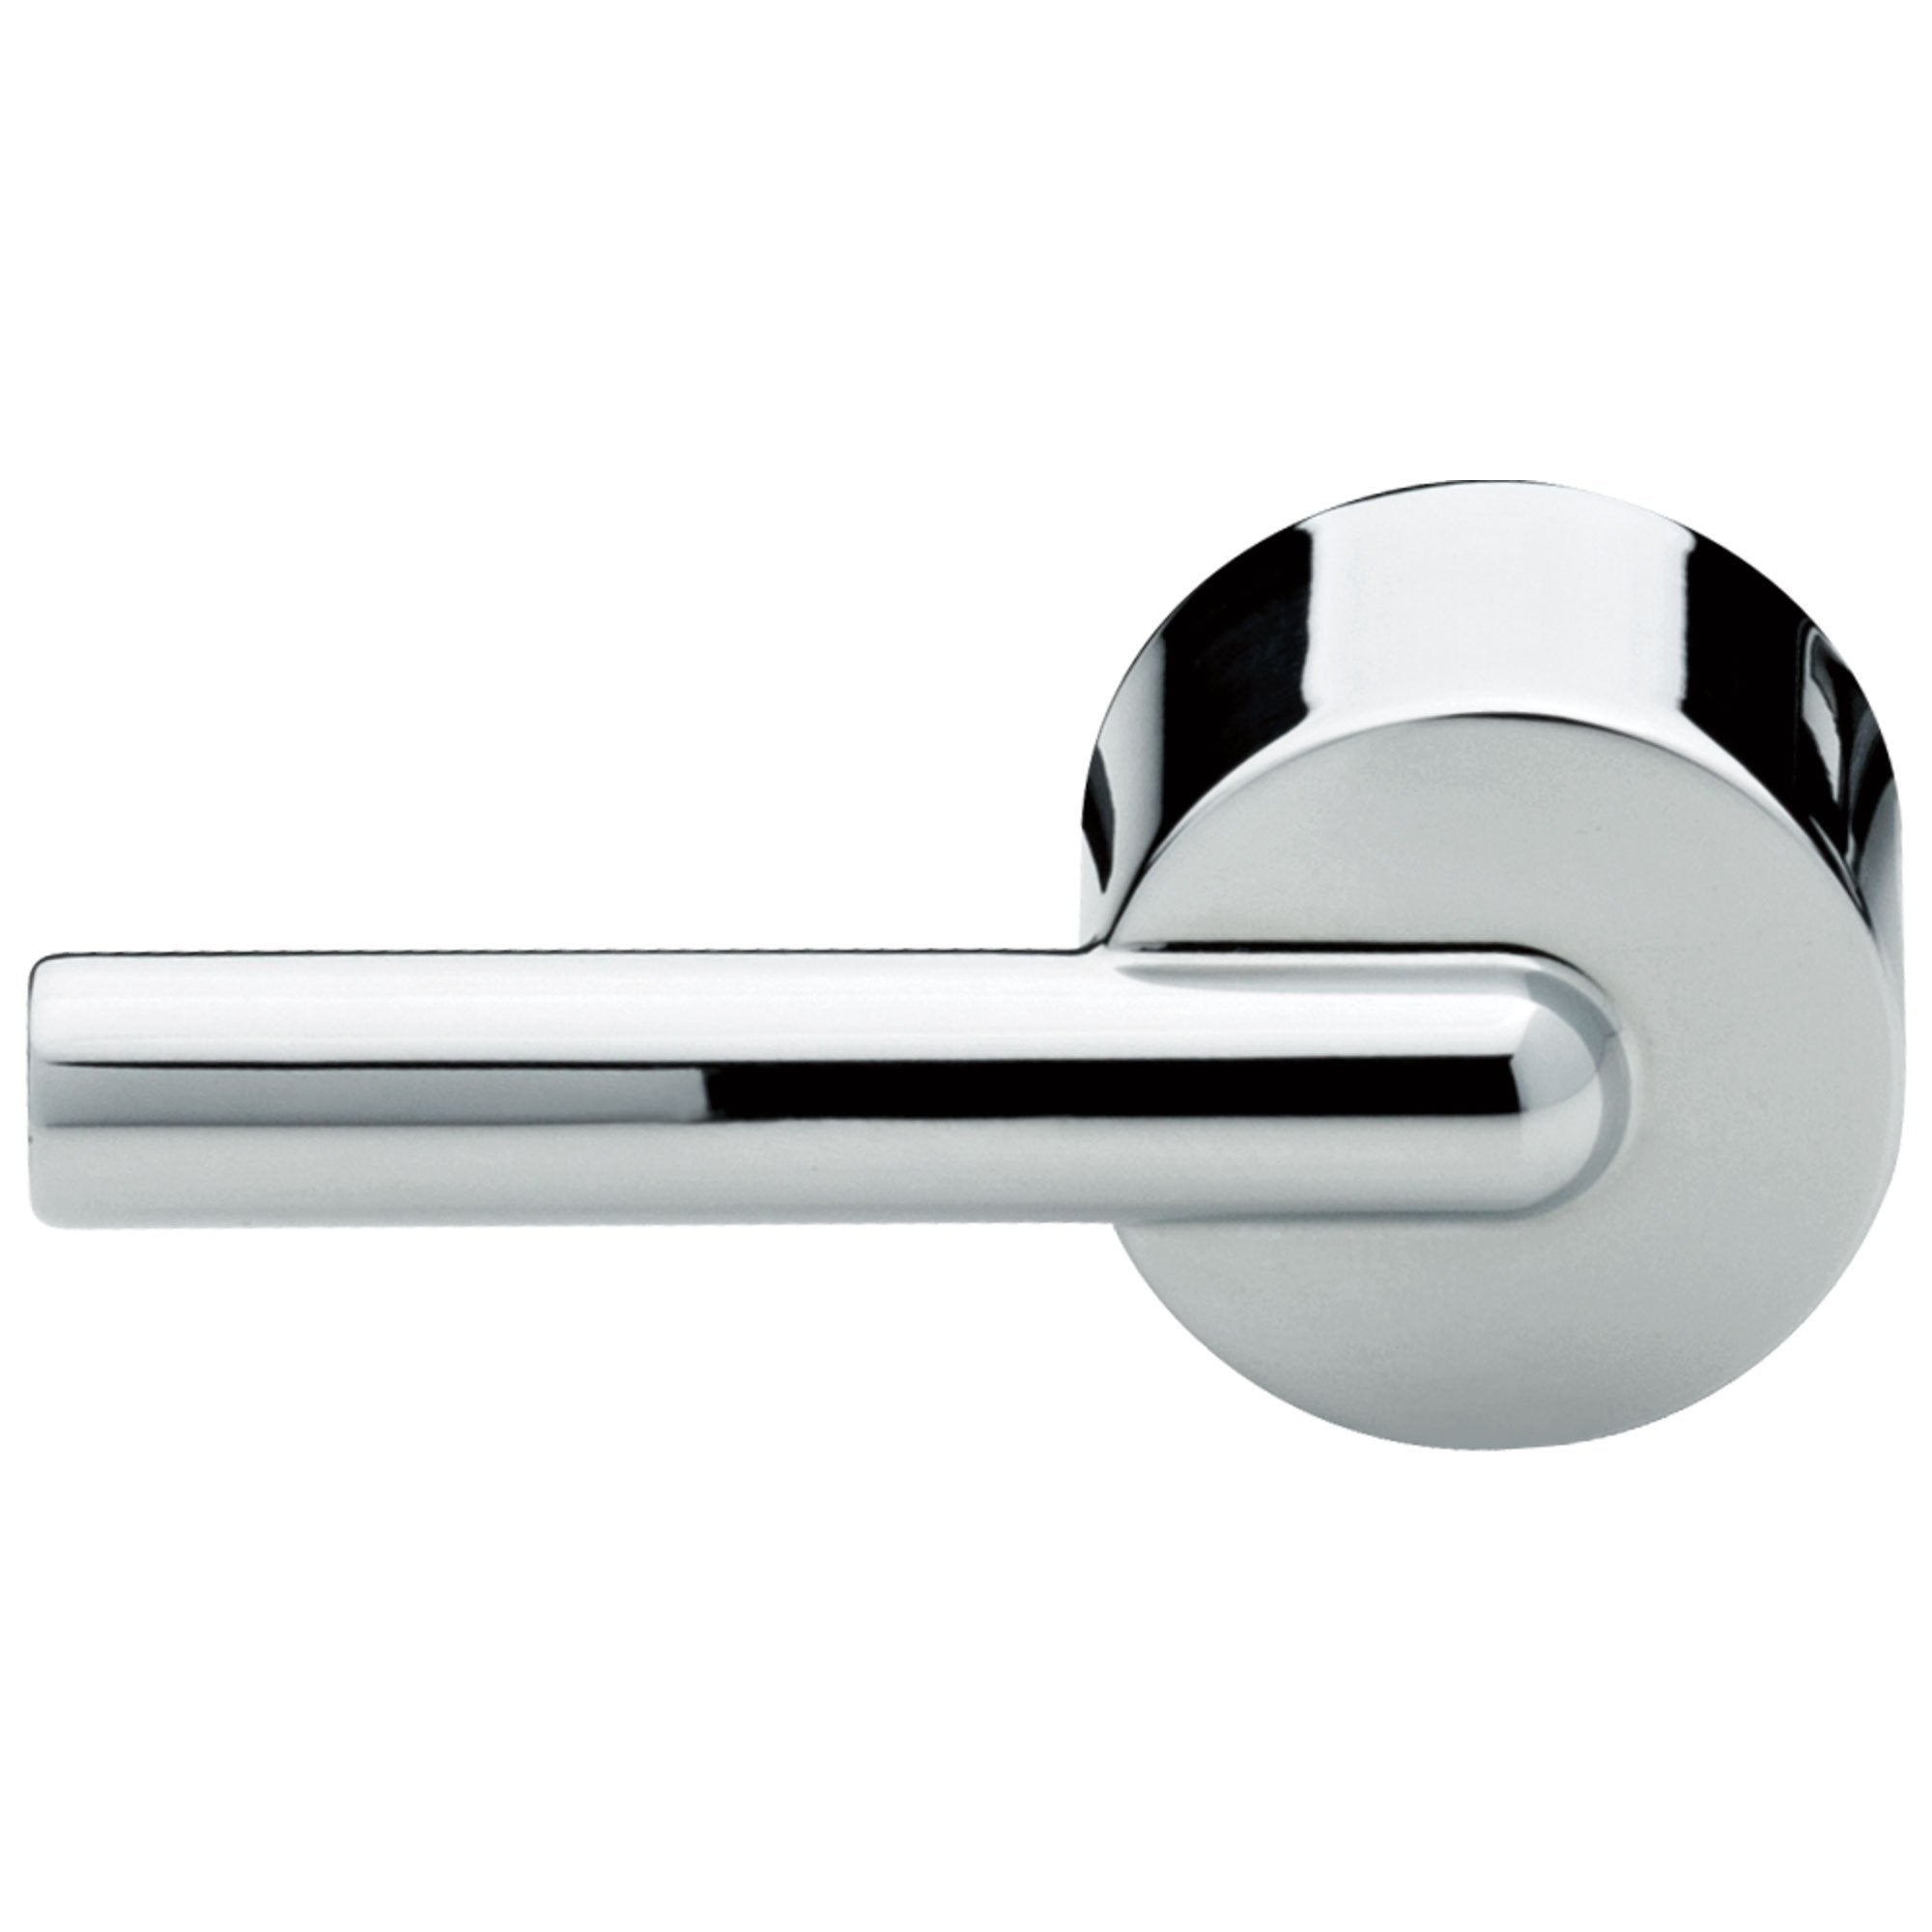 Delta Trinsic Collection Chrome Finish Toilet Tank Lever - Universal Mount D75960